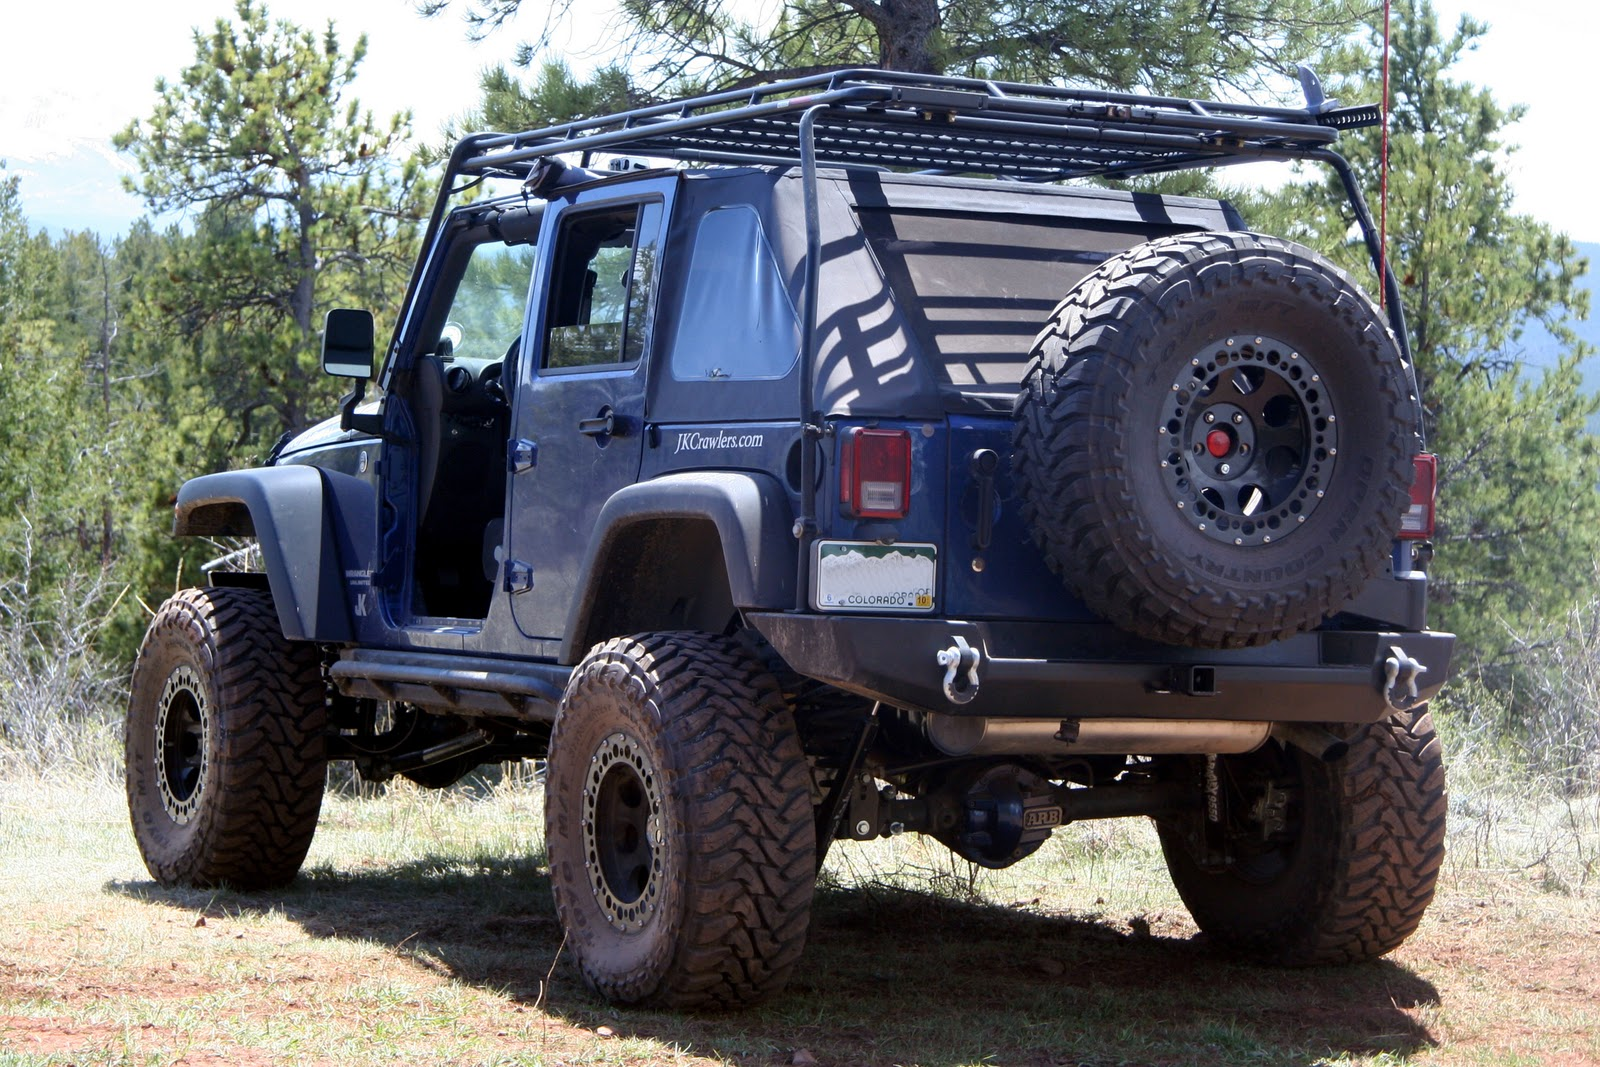 Gobi Roof Rack And Soft Top Jkowners Com Jeep Wrangler